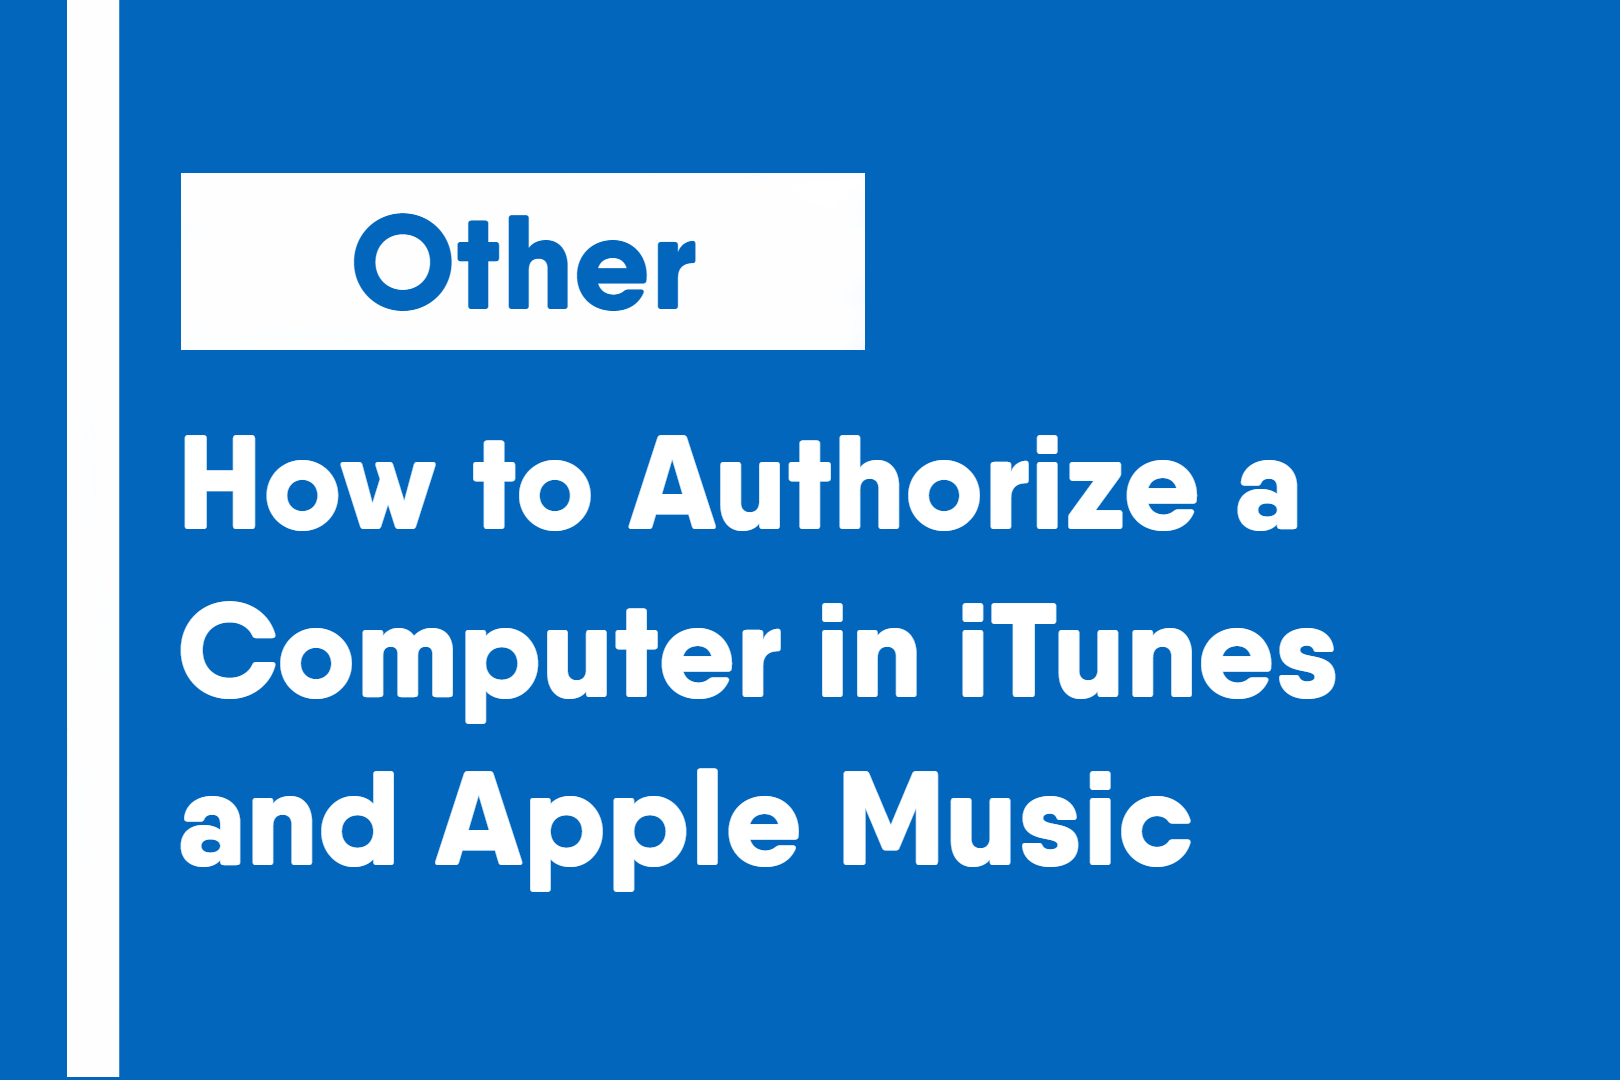 How to Authorize a Computer in iTunes and Apple Music